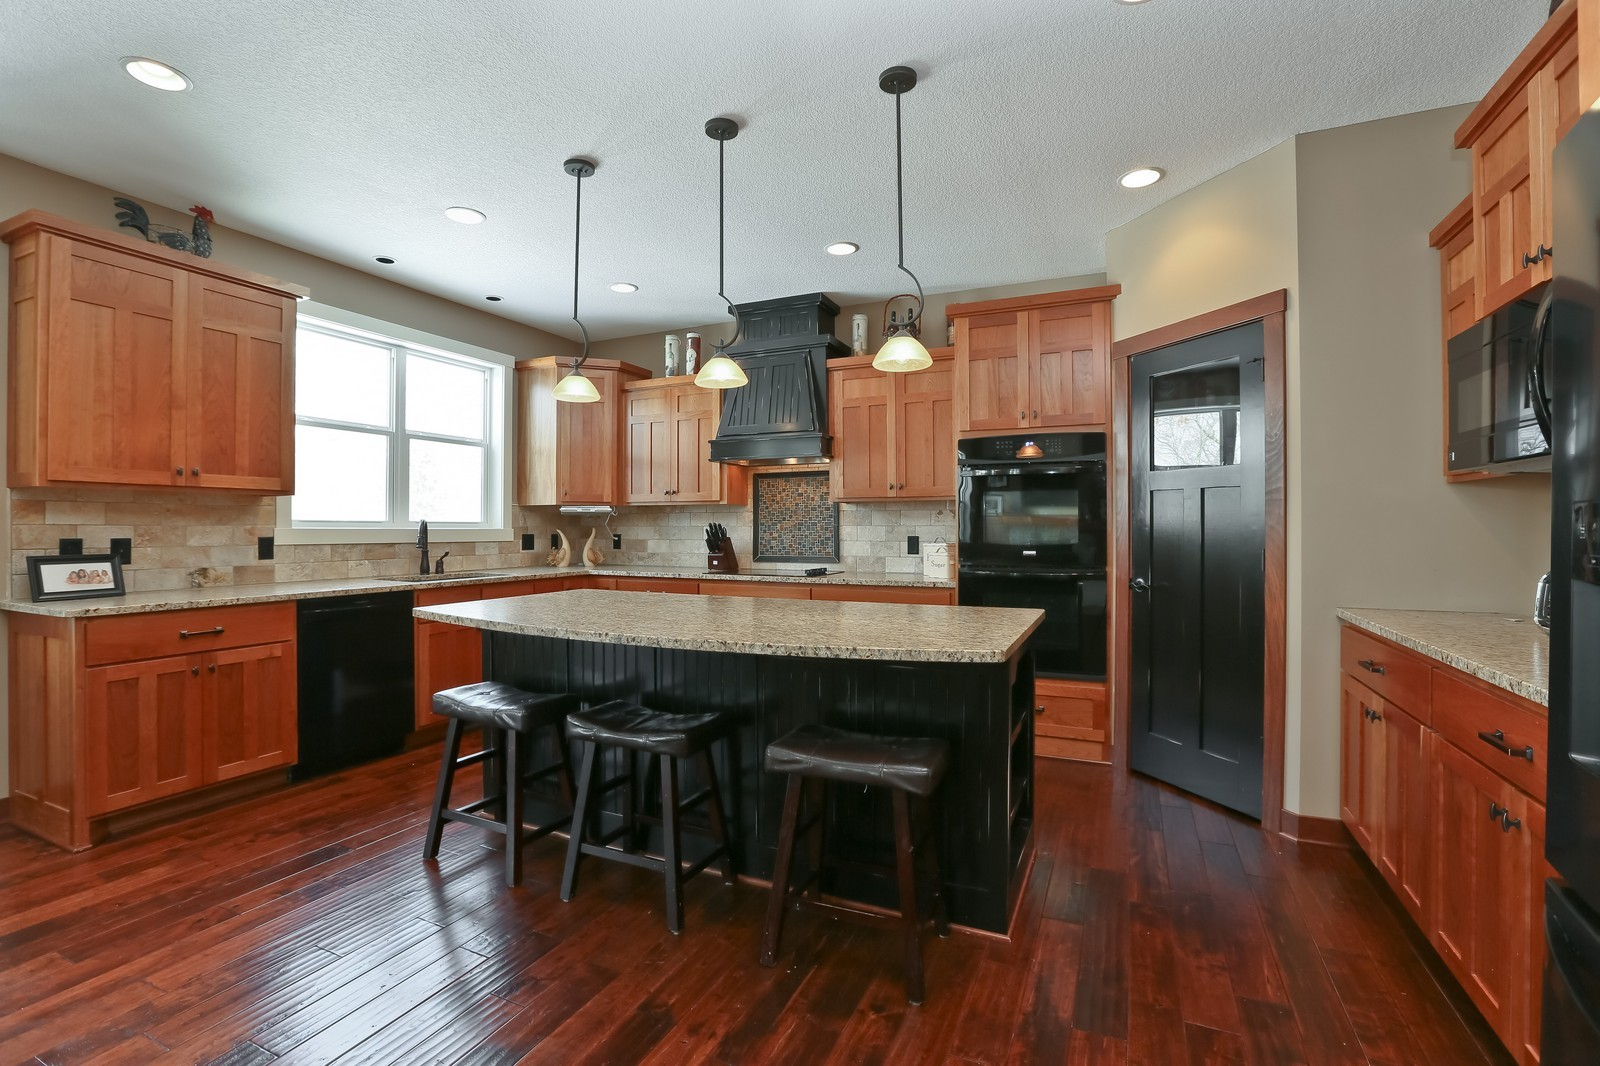 Real Estate Photography - 859 Fox Rd, Lino Lakes, MN, 55014 - Kitchen